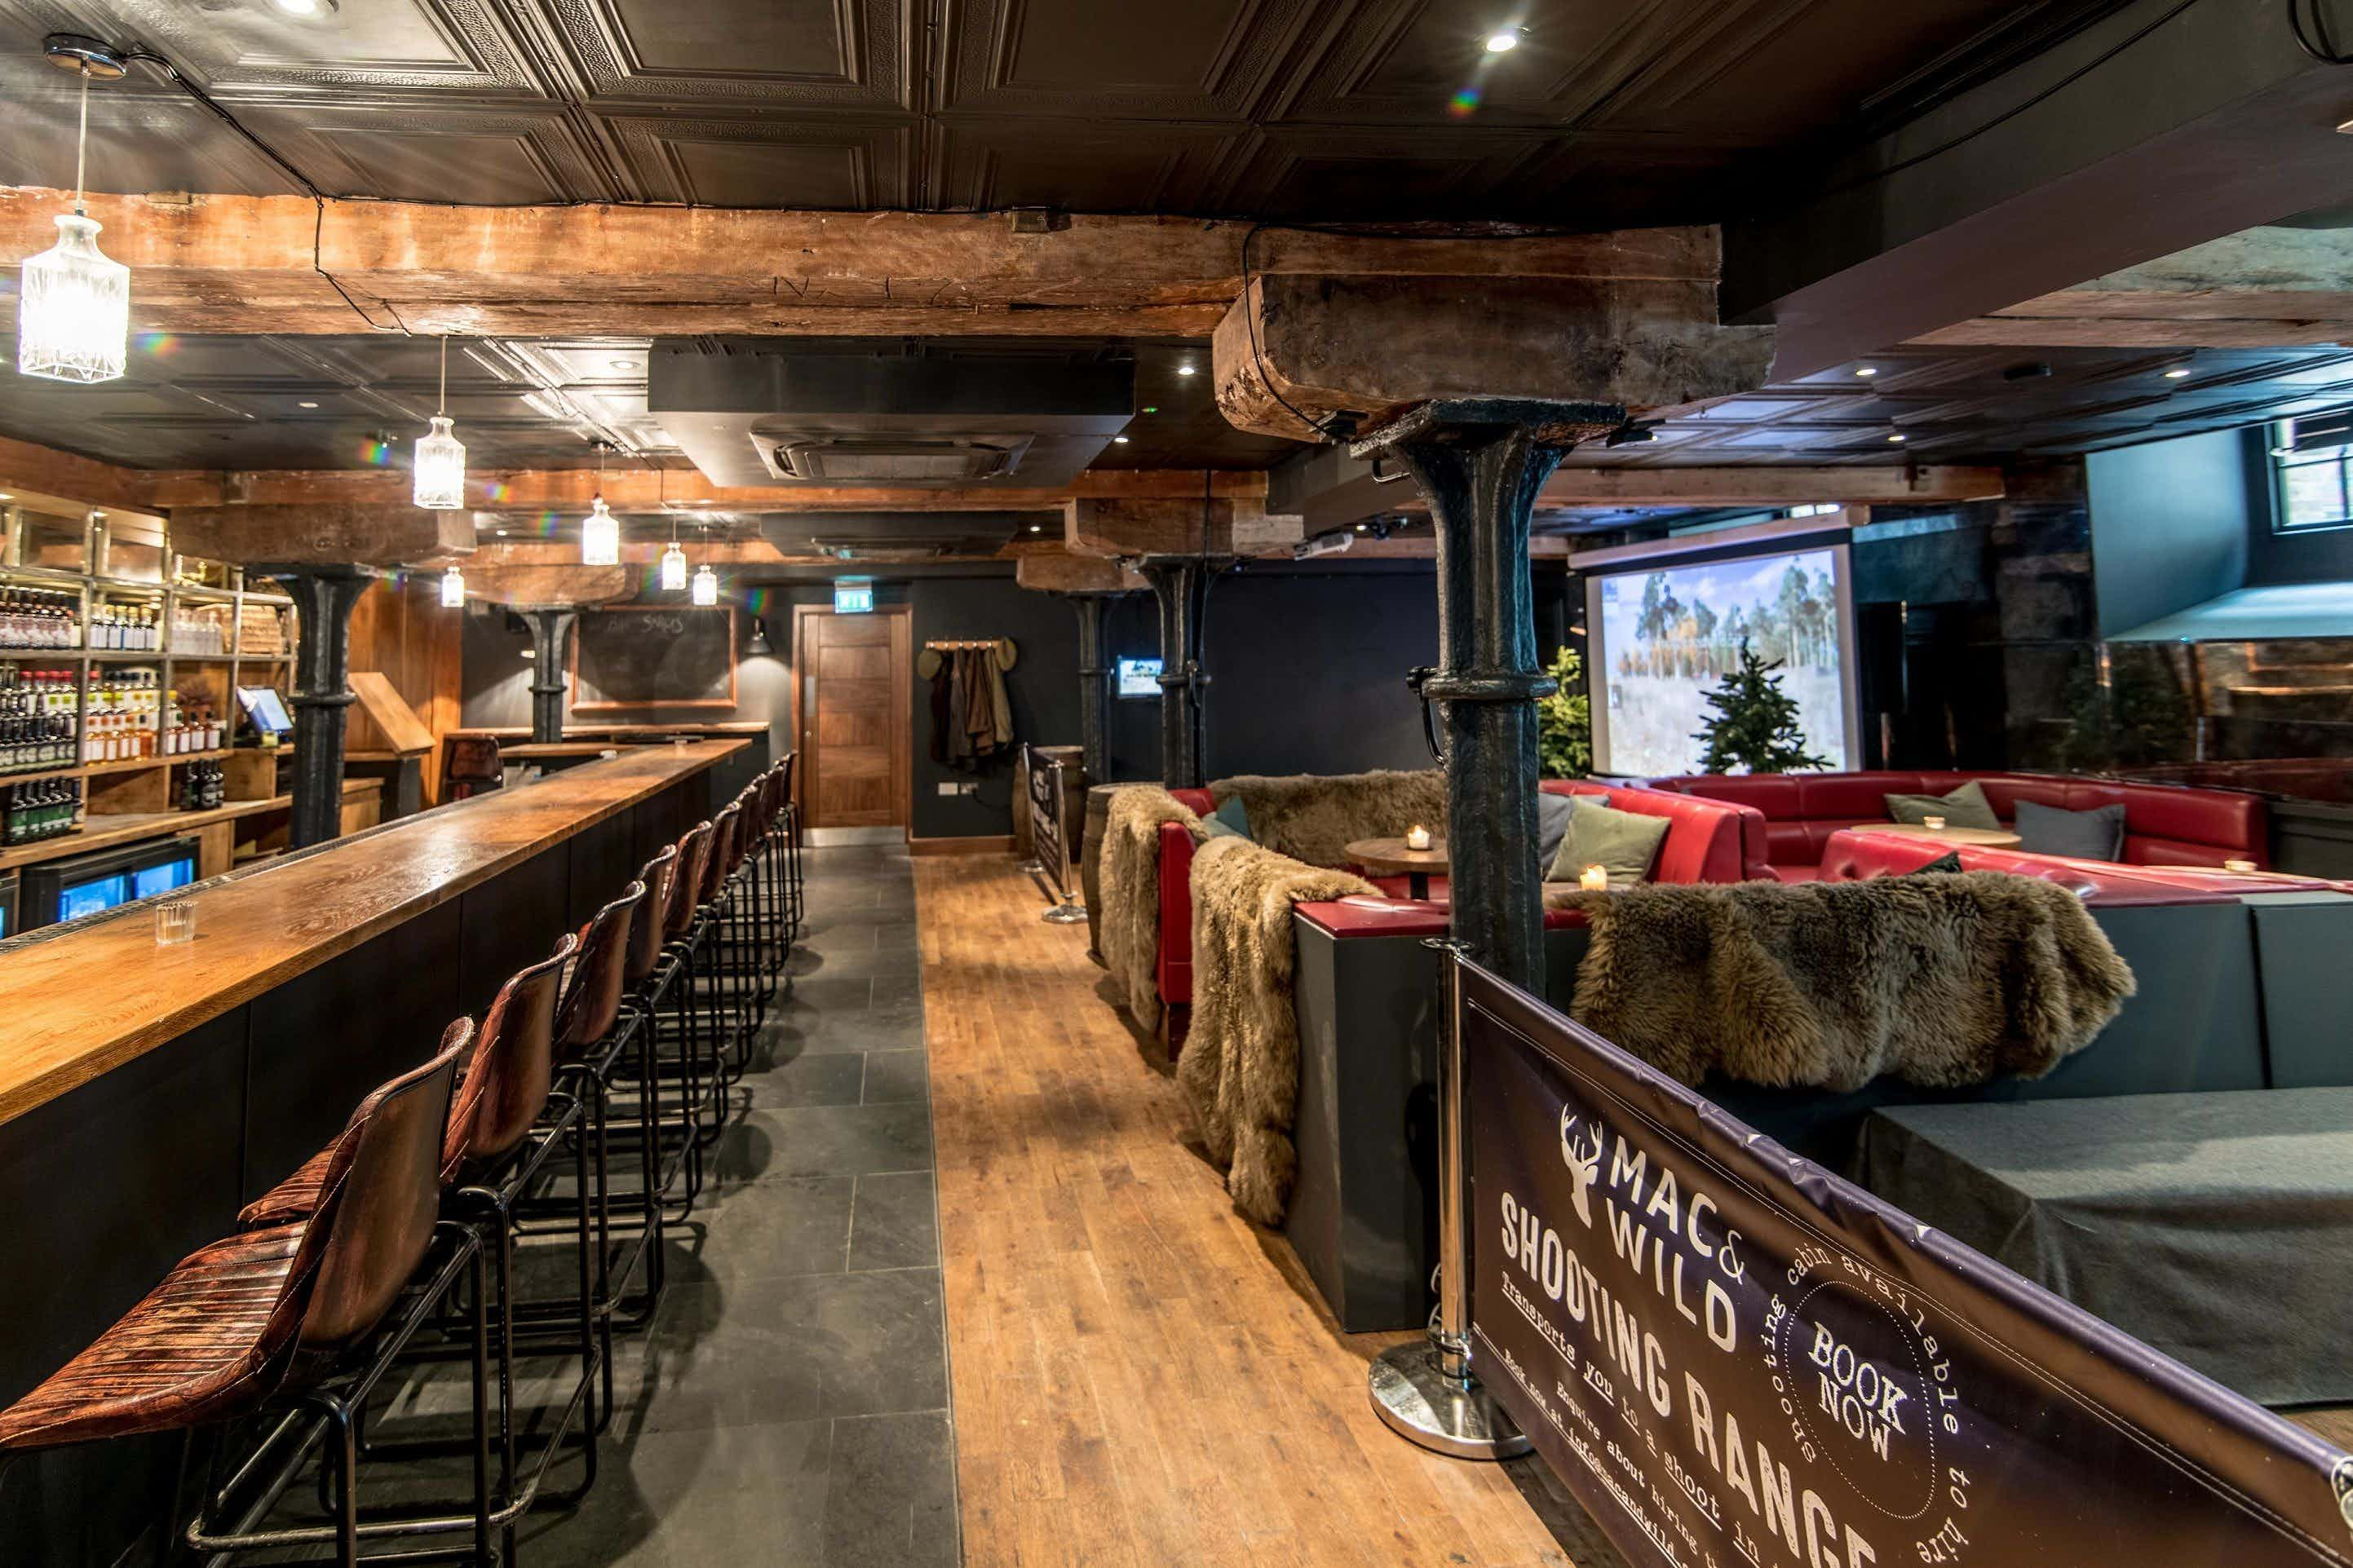 Shooting Range and Whiskey Bar , Mac and Wild City